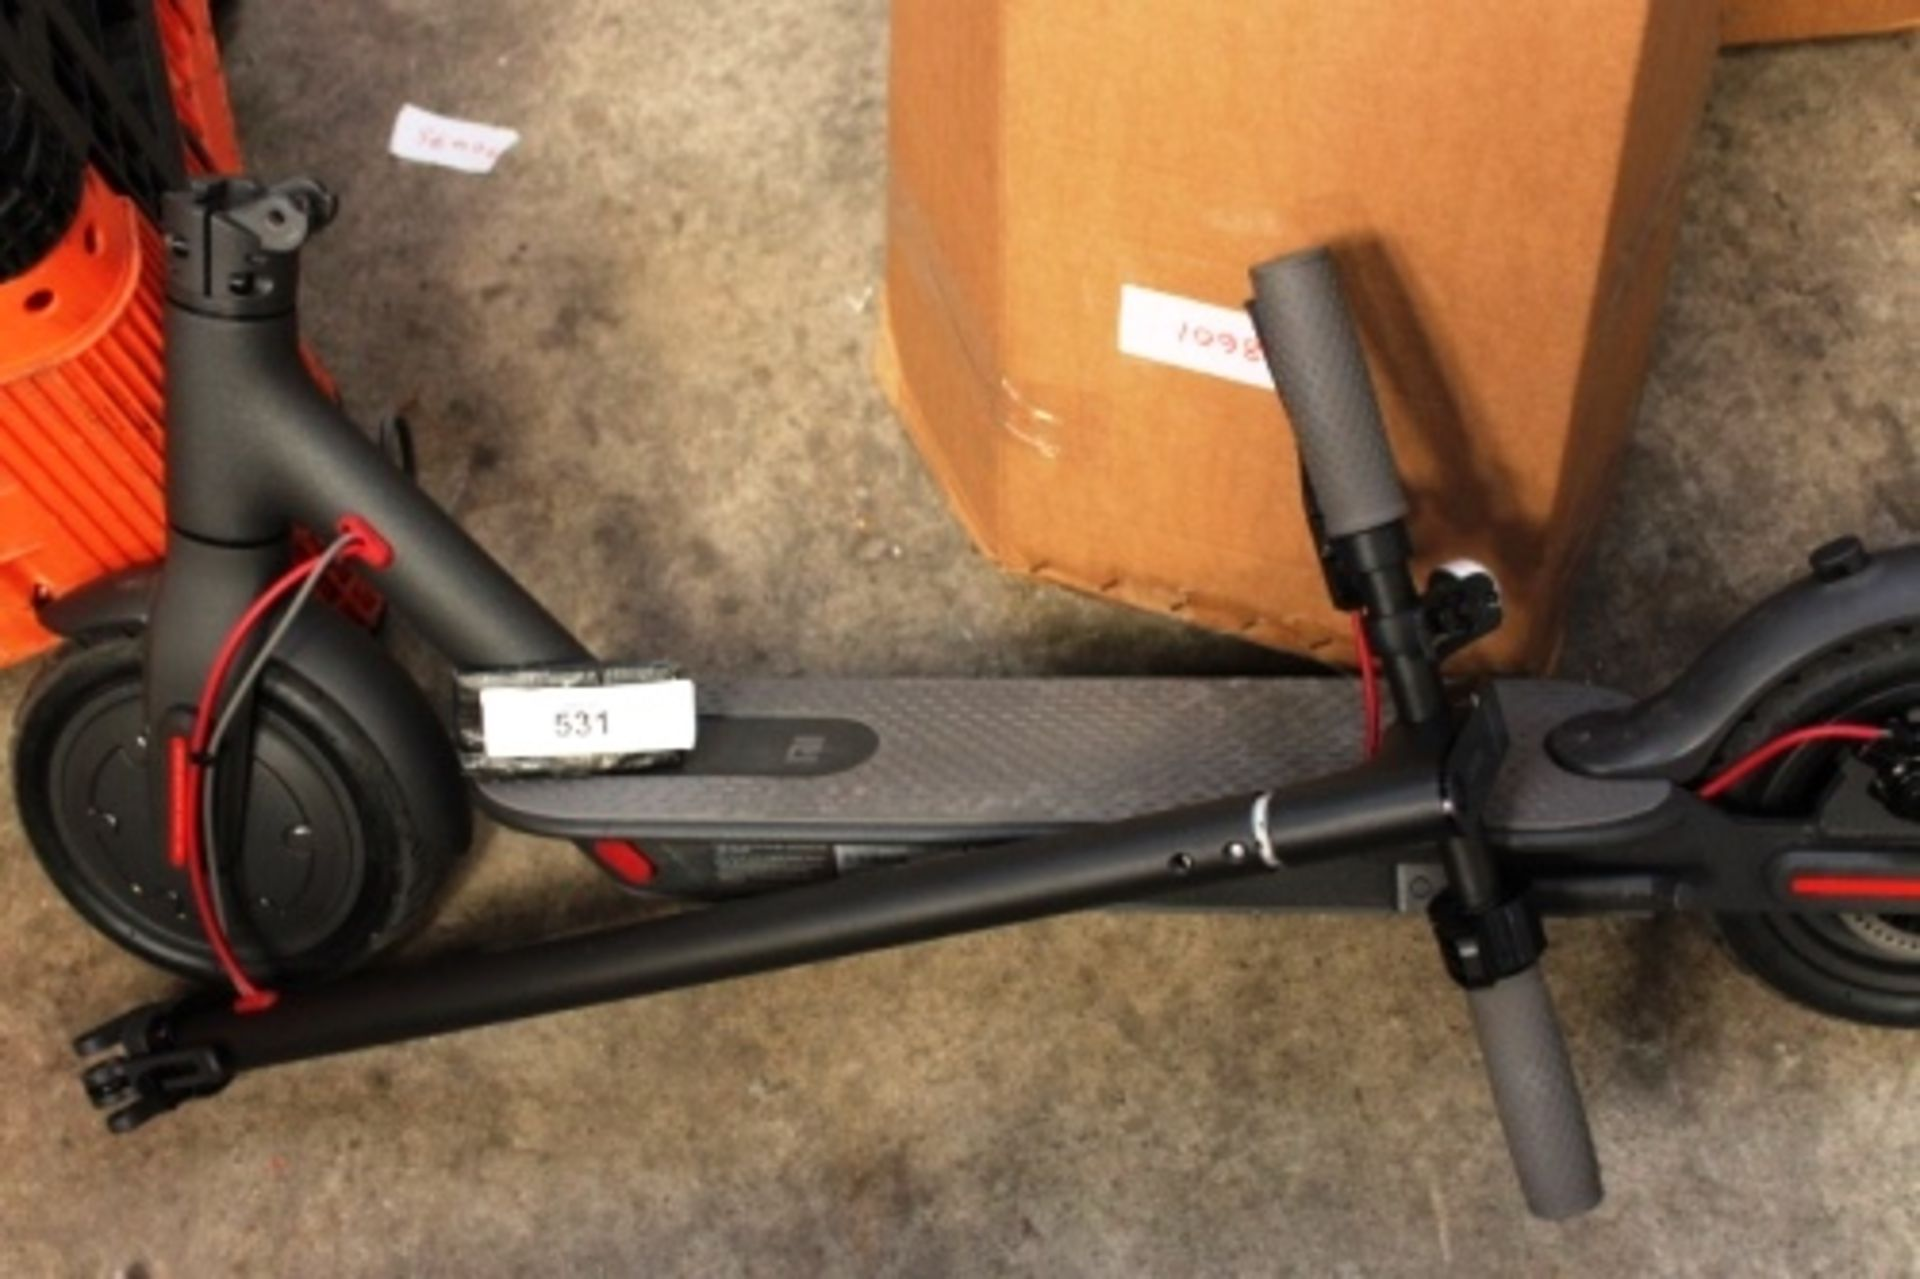 Lot 531 - 1 x Mi electric scooter, model M365, 42V, disassembled - Sold as seen (esfloor)